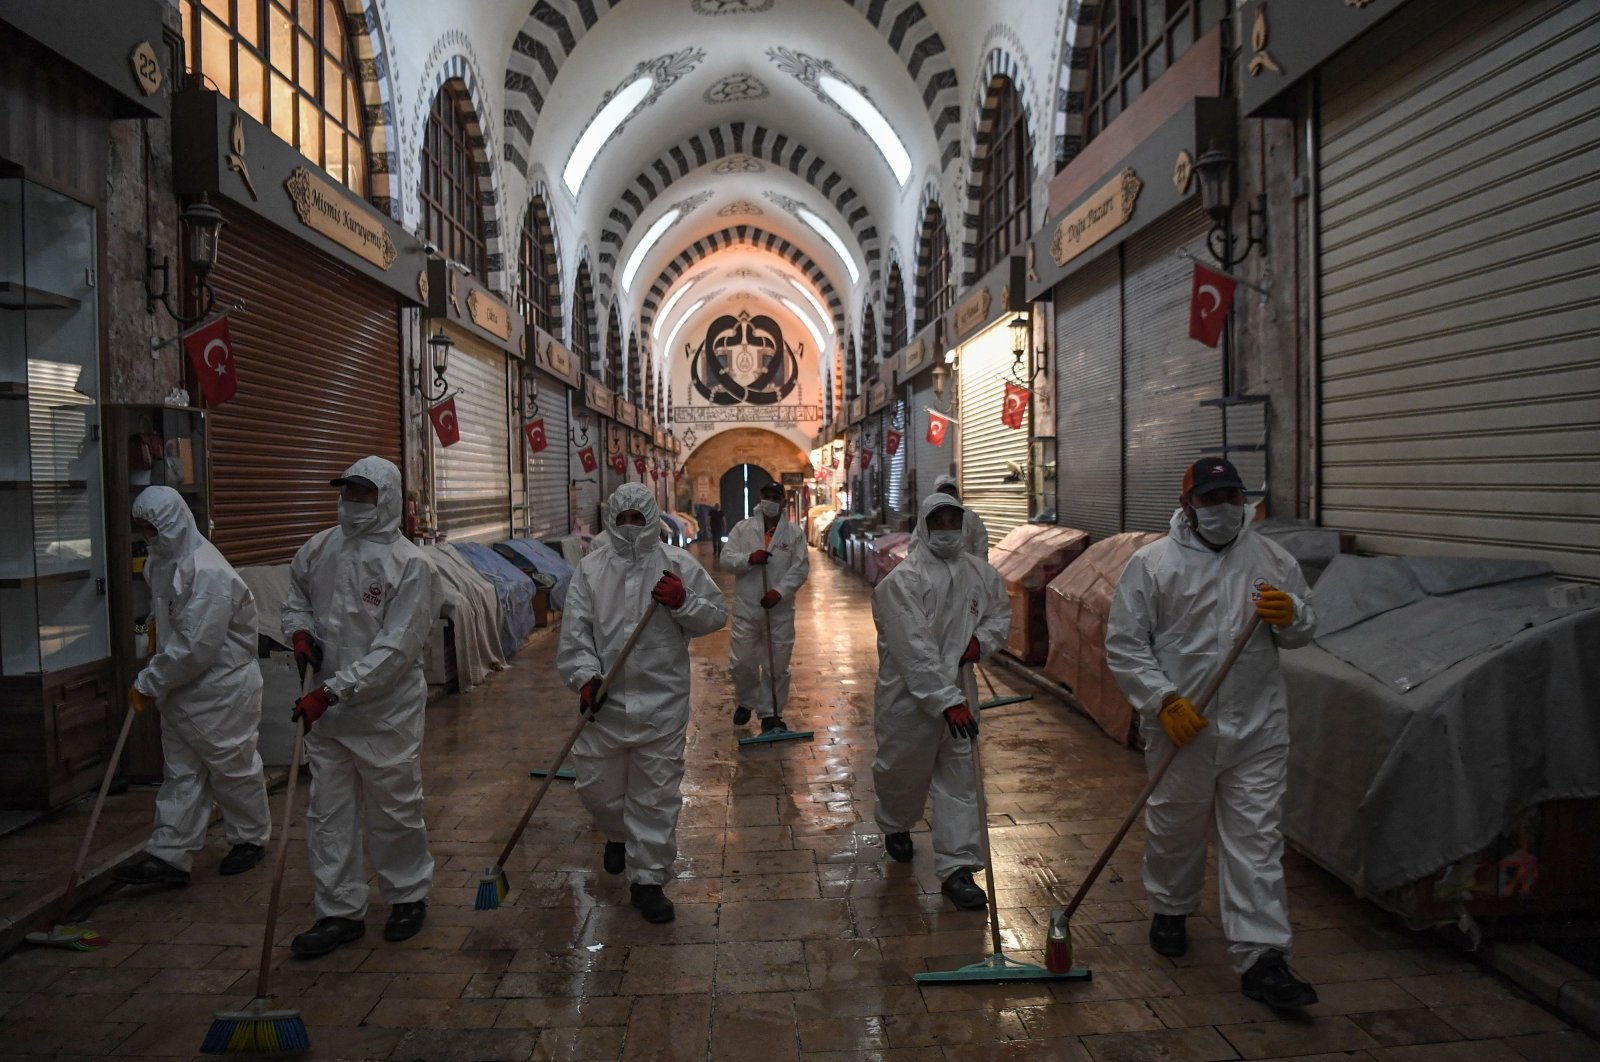 Fatih Municipality workers wearing personal protective equipment (PPE) disinfect the iconic Spice Bazaar to prevent the spread of the COVID-19, Istanbul, Turkey, May 28, 2020. (AFP Photo)